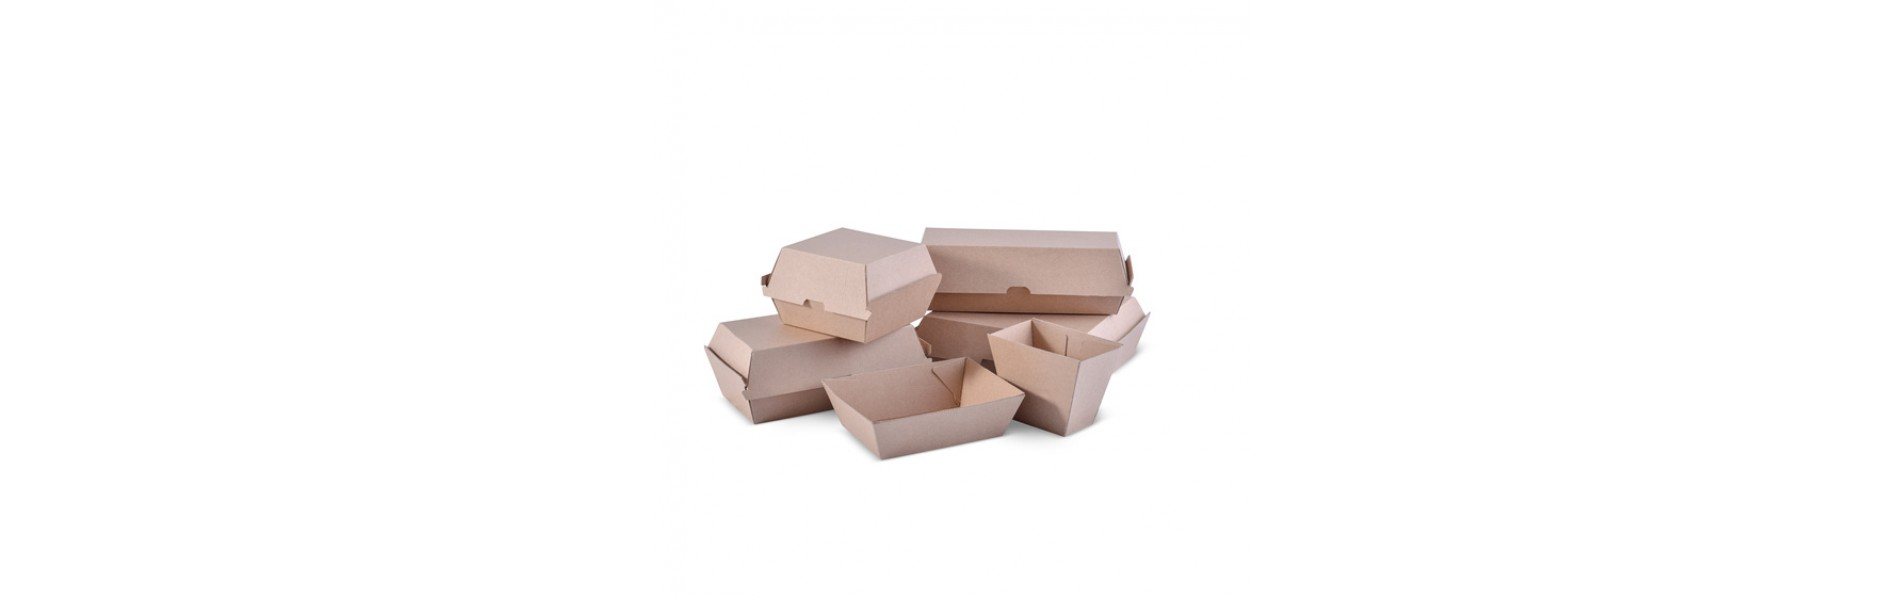 Food Takeaway Containers